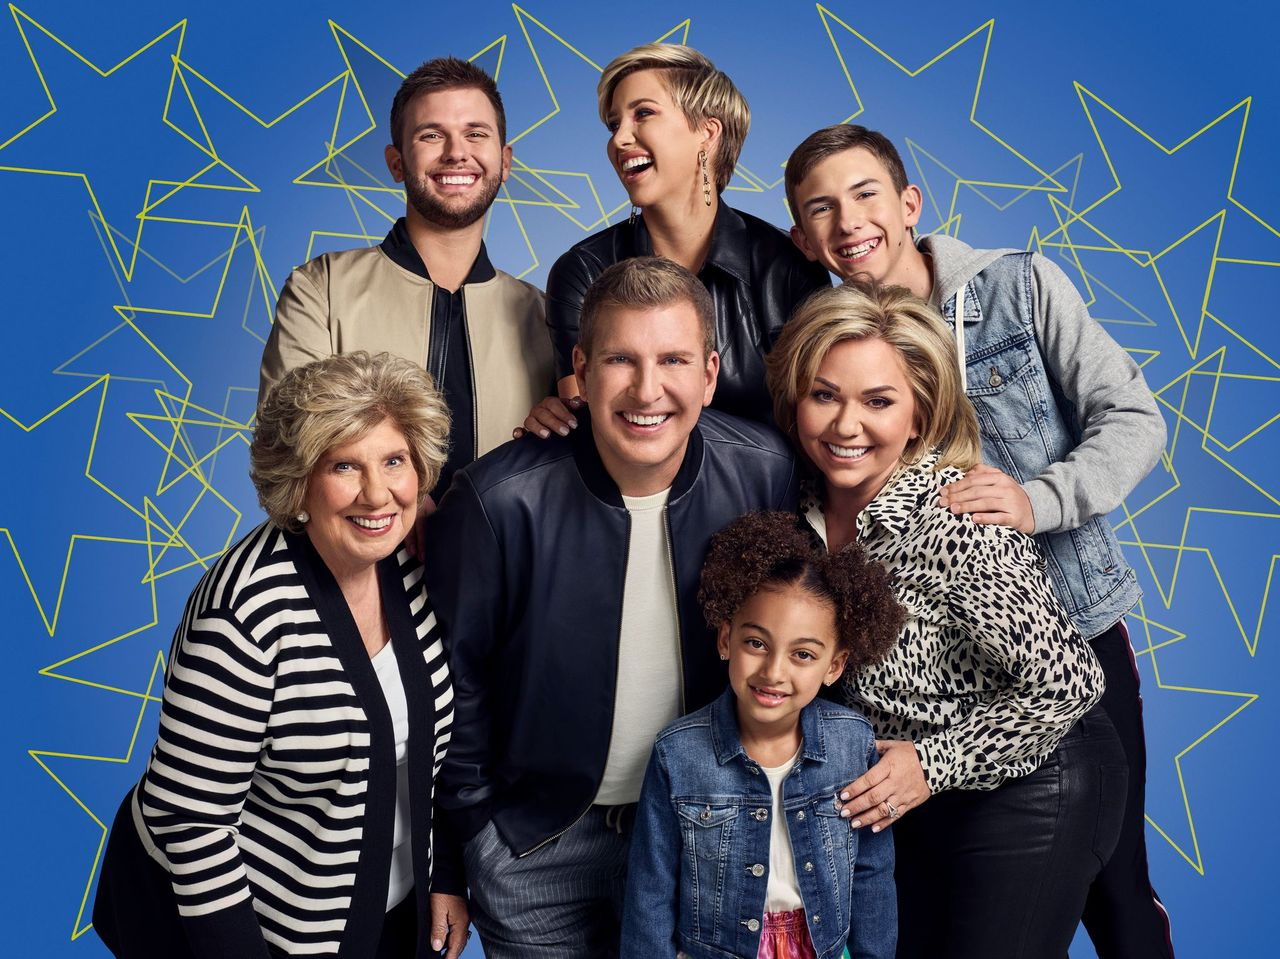 """Faye Chrisley, Chase Chrisley, Todd Chrisley, Savannah Chrisley, Chloe Chrisley, Julie Chrisley, and Grayson Chrisley pose for a family portrait for """"Chrisley Knows Best"""" Season 8.   Source: Getty Images"""